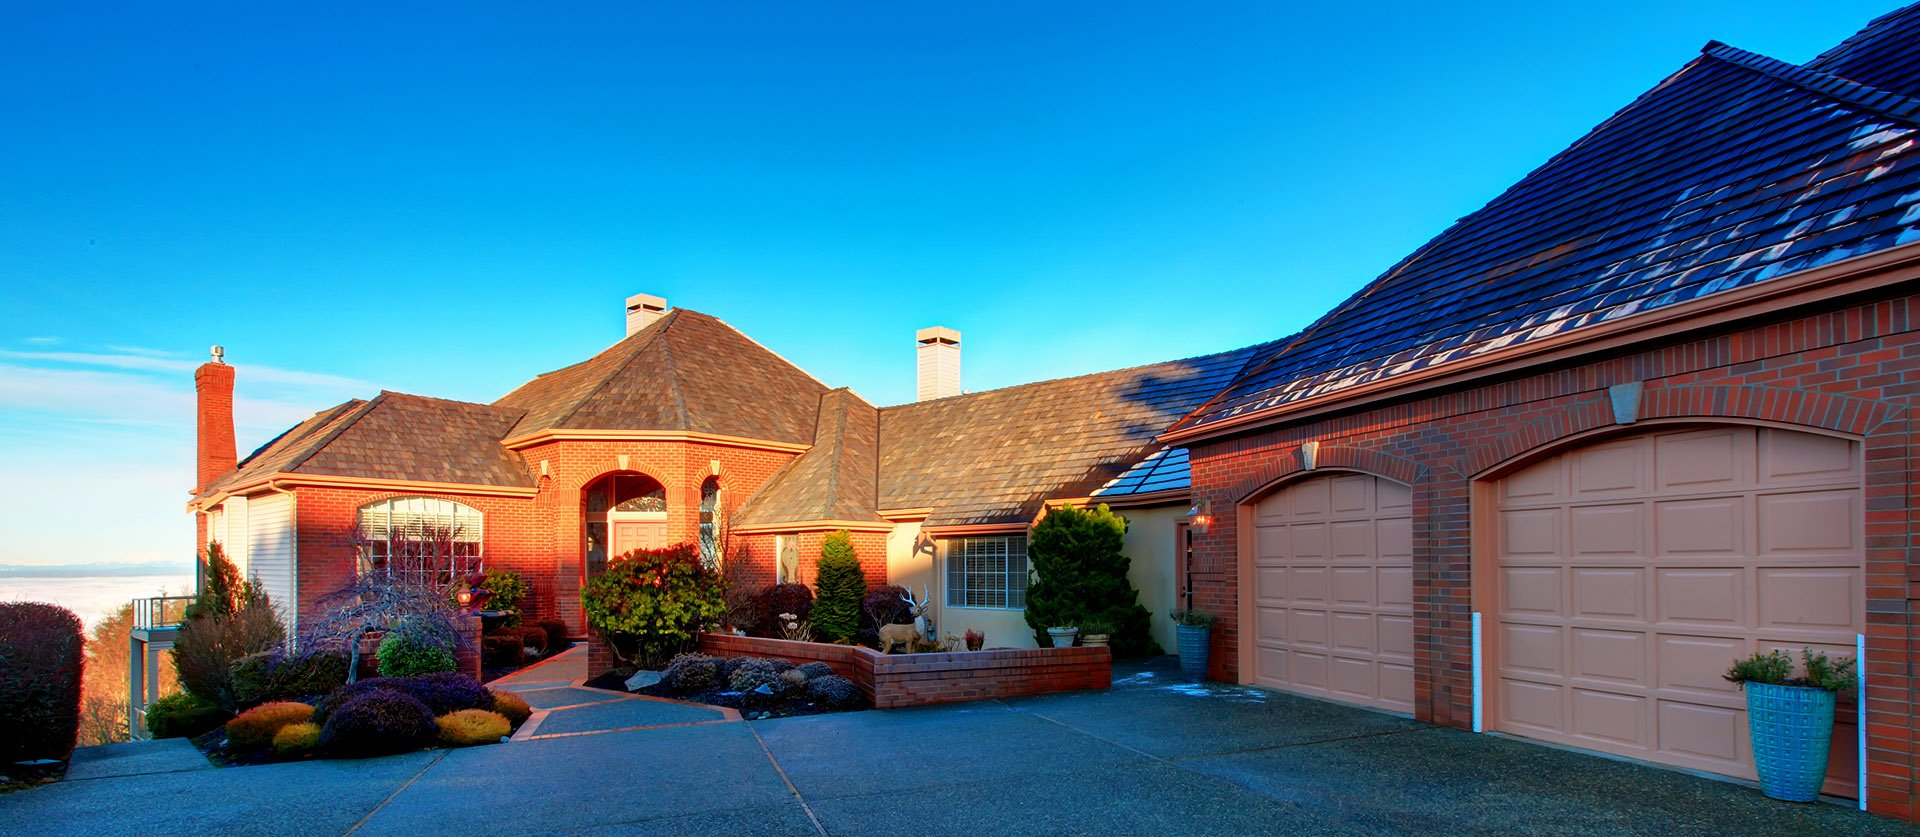 Residential Roofing Services